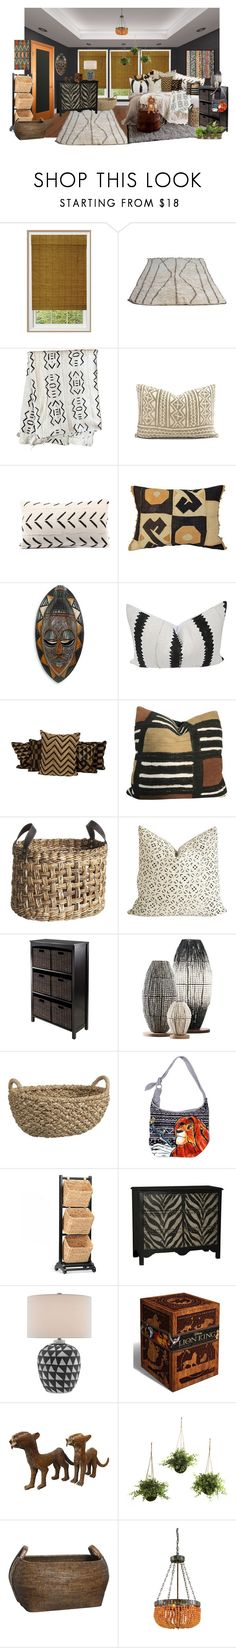 """africa"" by sterlingkitten on Polyvore featuring interior, interiors, interior design, home, home decor, interior decorating, NOVICA, Jayson Home, Pier 1 Imports and Crate and Barrel"